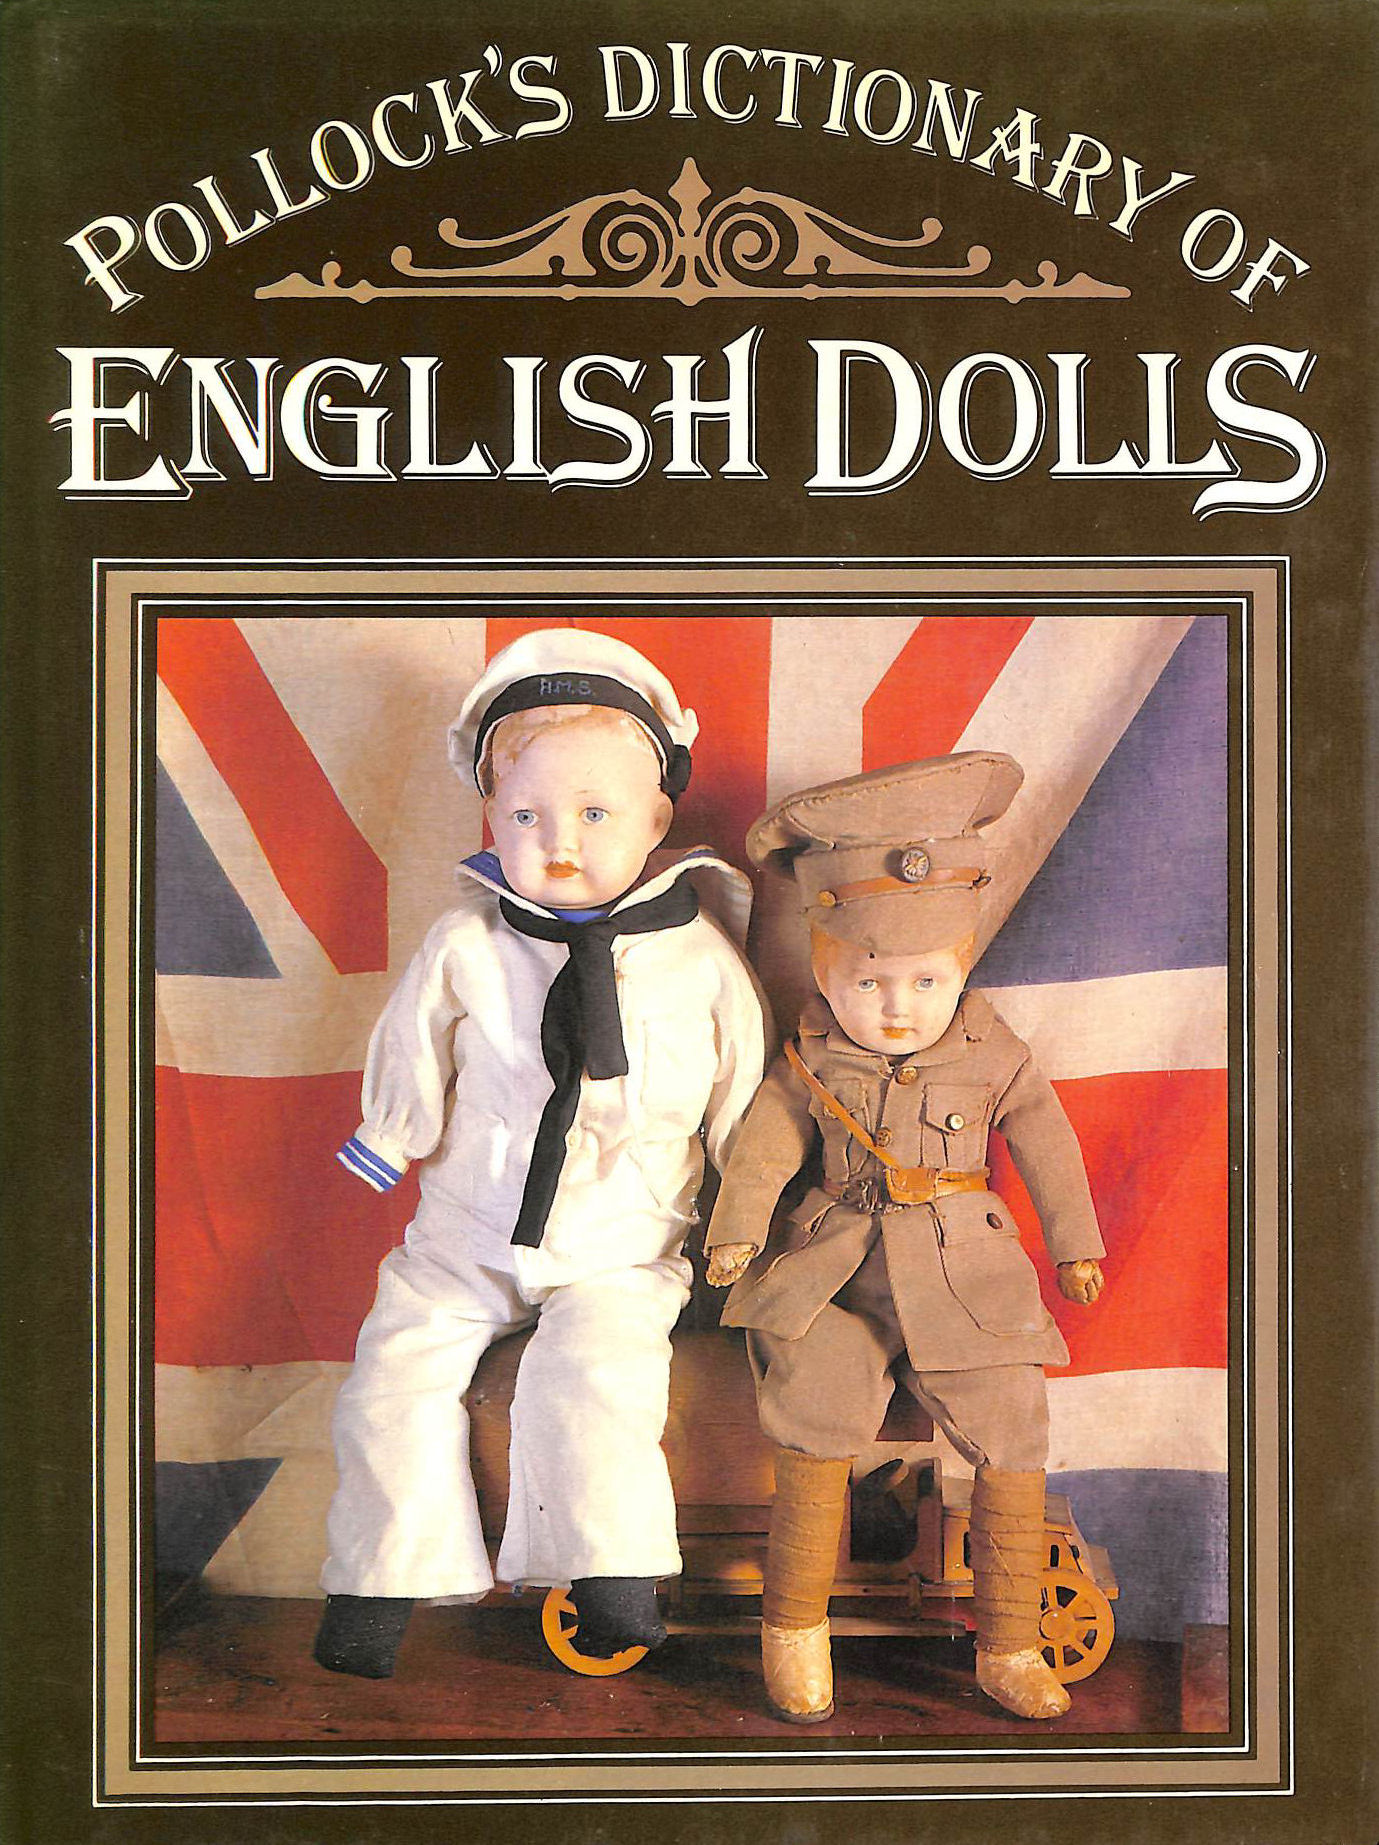 Image for Pollock's Dictionary of English Dolls